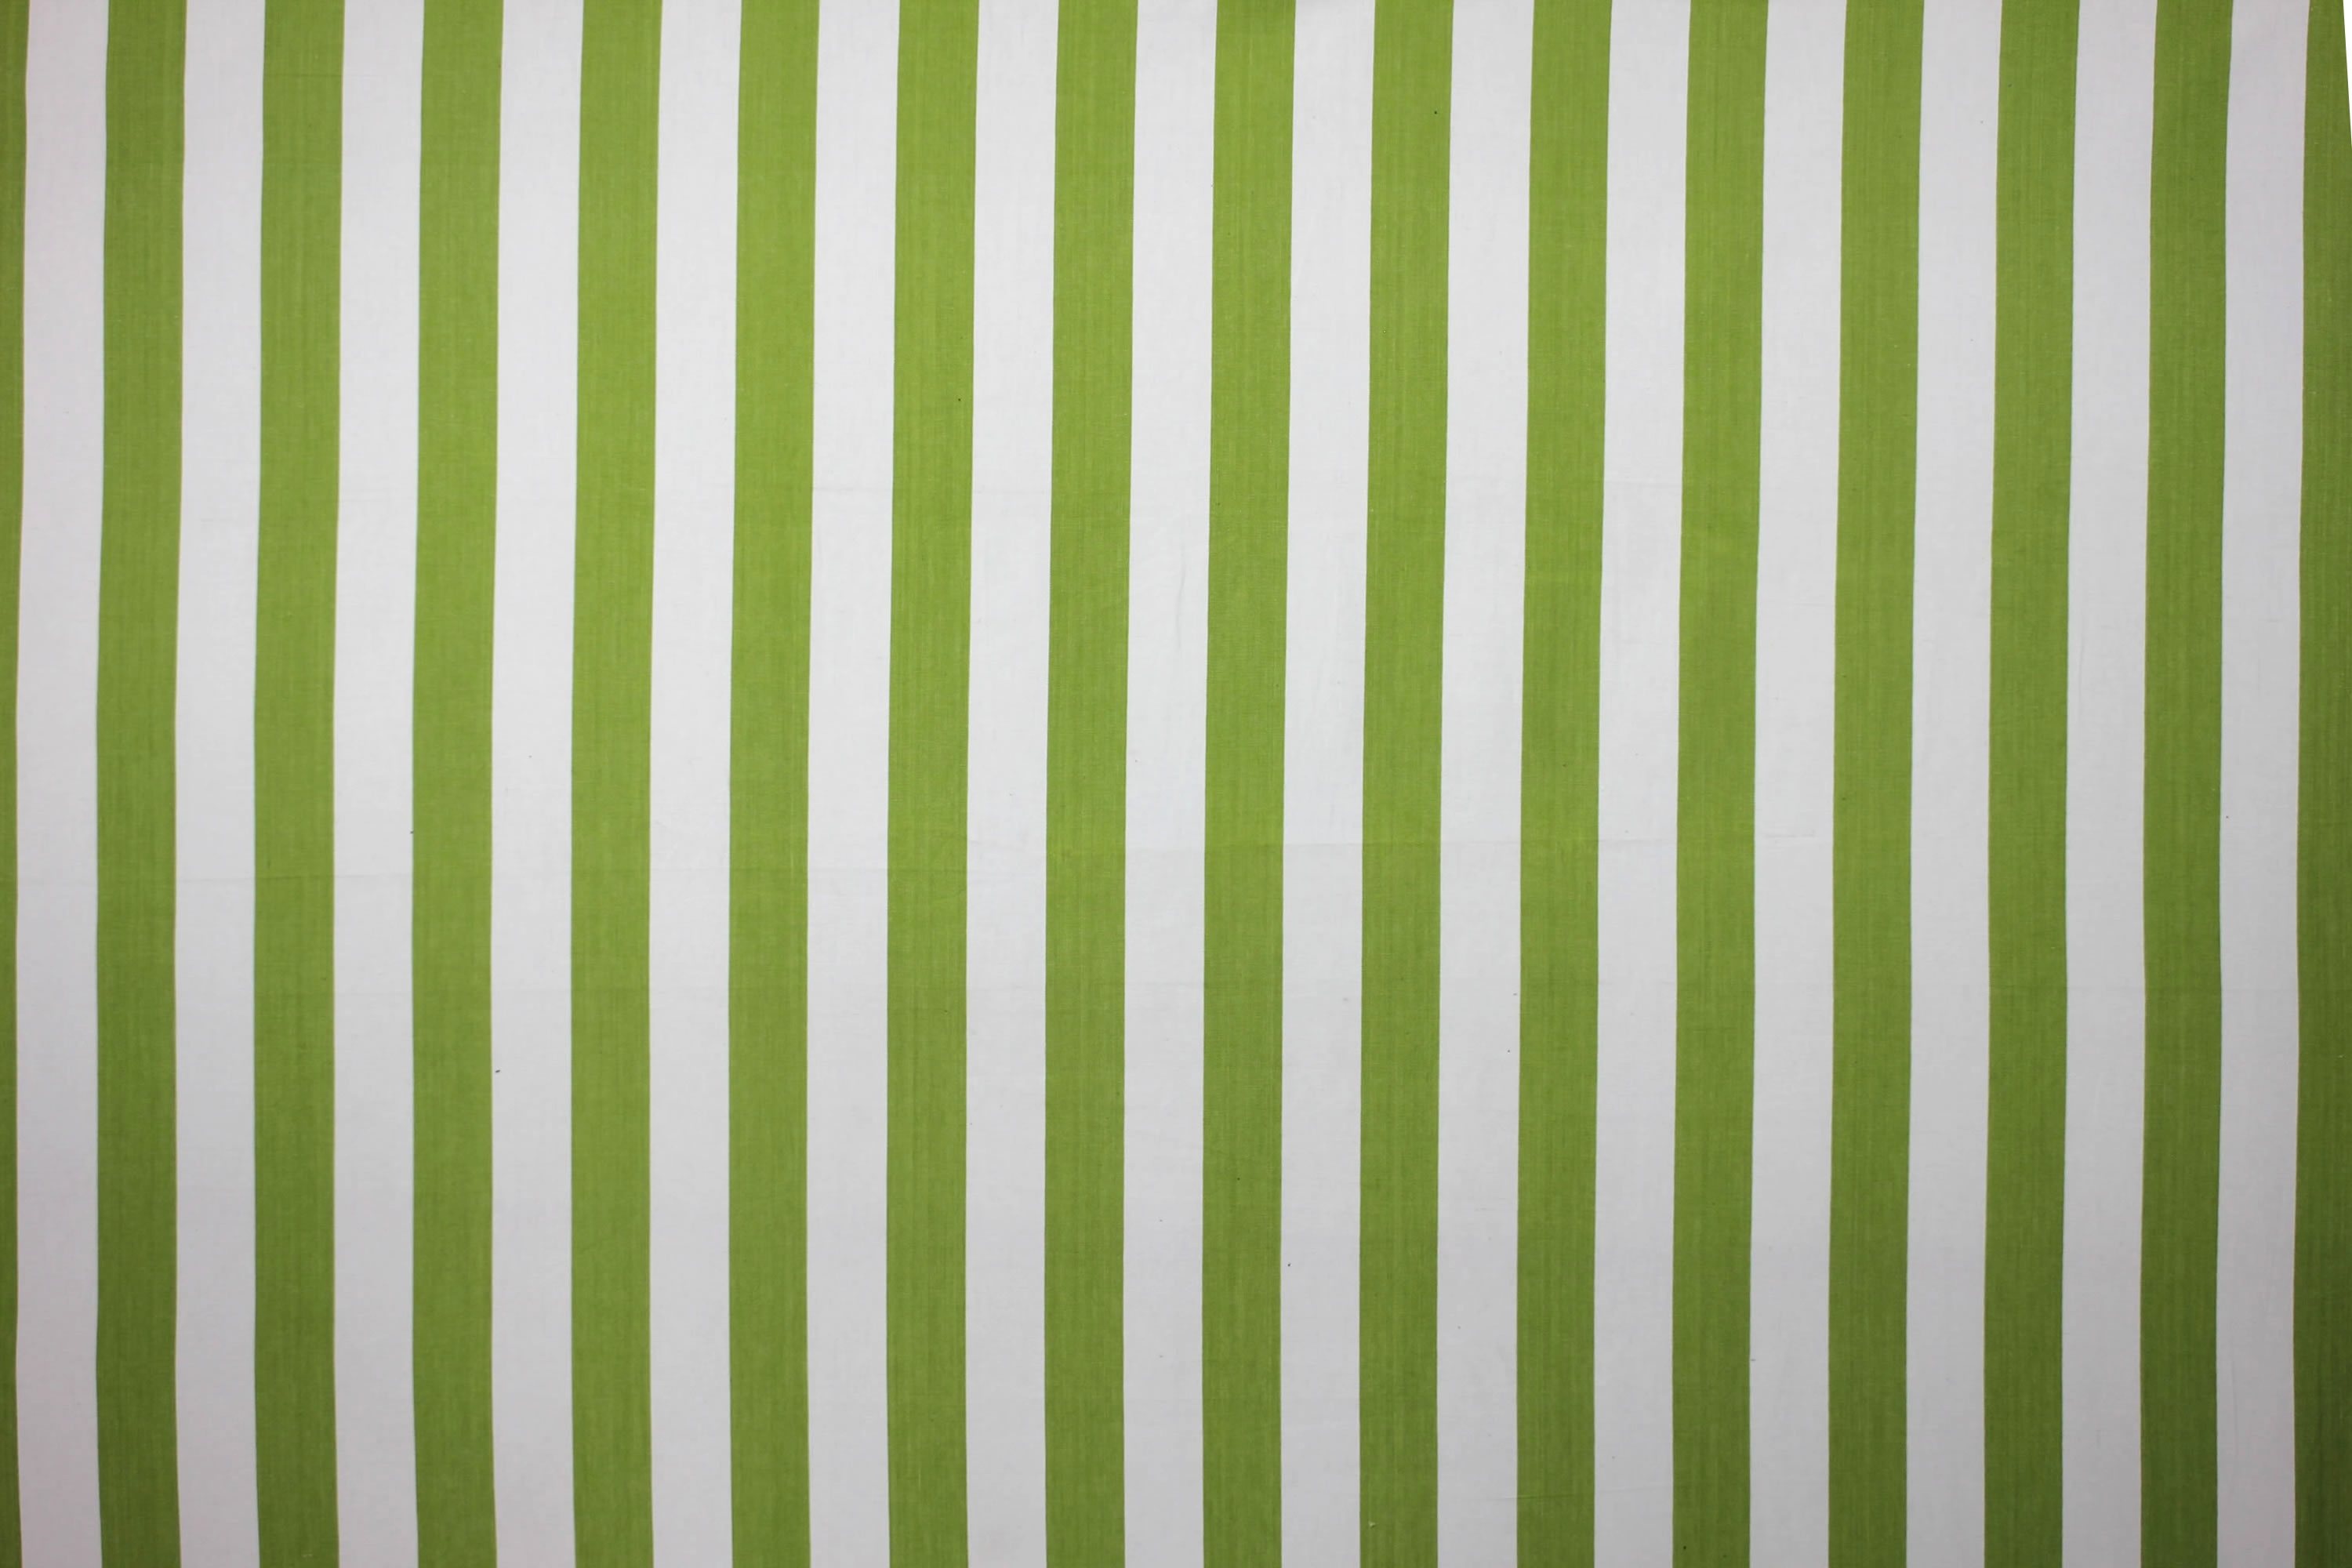 Lime Green Table Tennis Striped Fabric